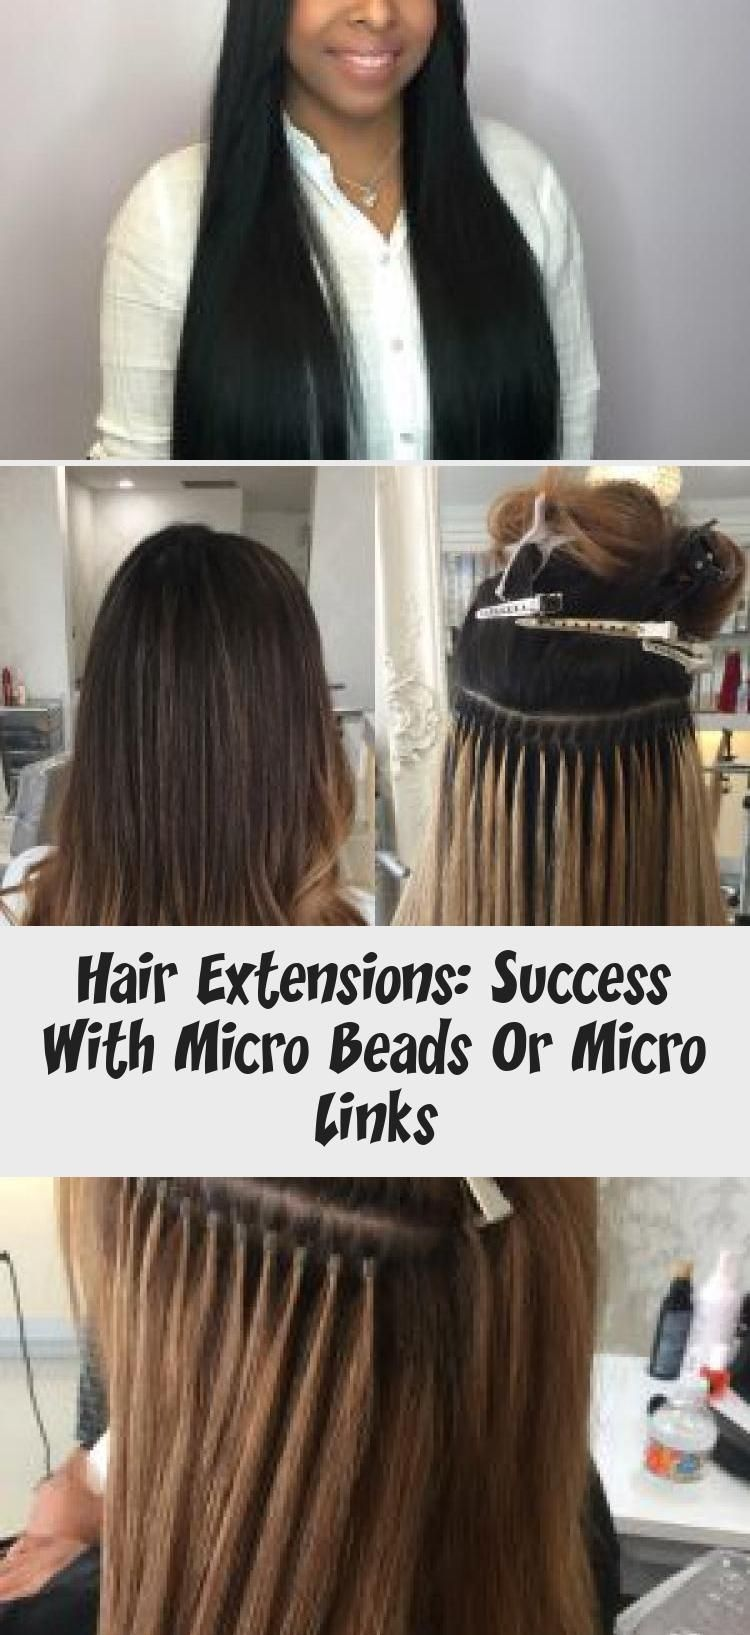 Hair Extensions Success With Micro Beads Or Micro Links